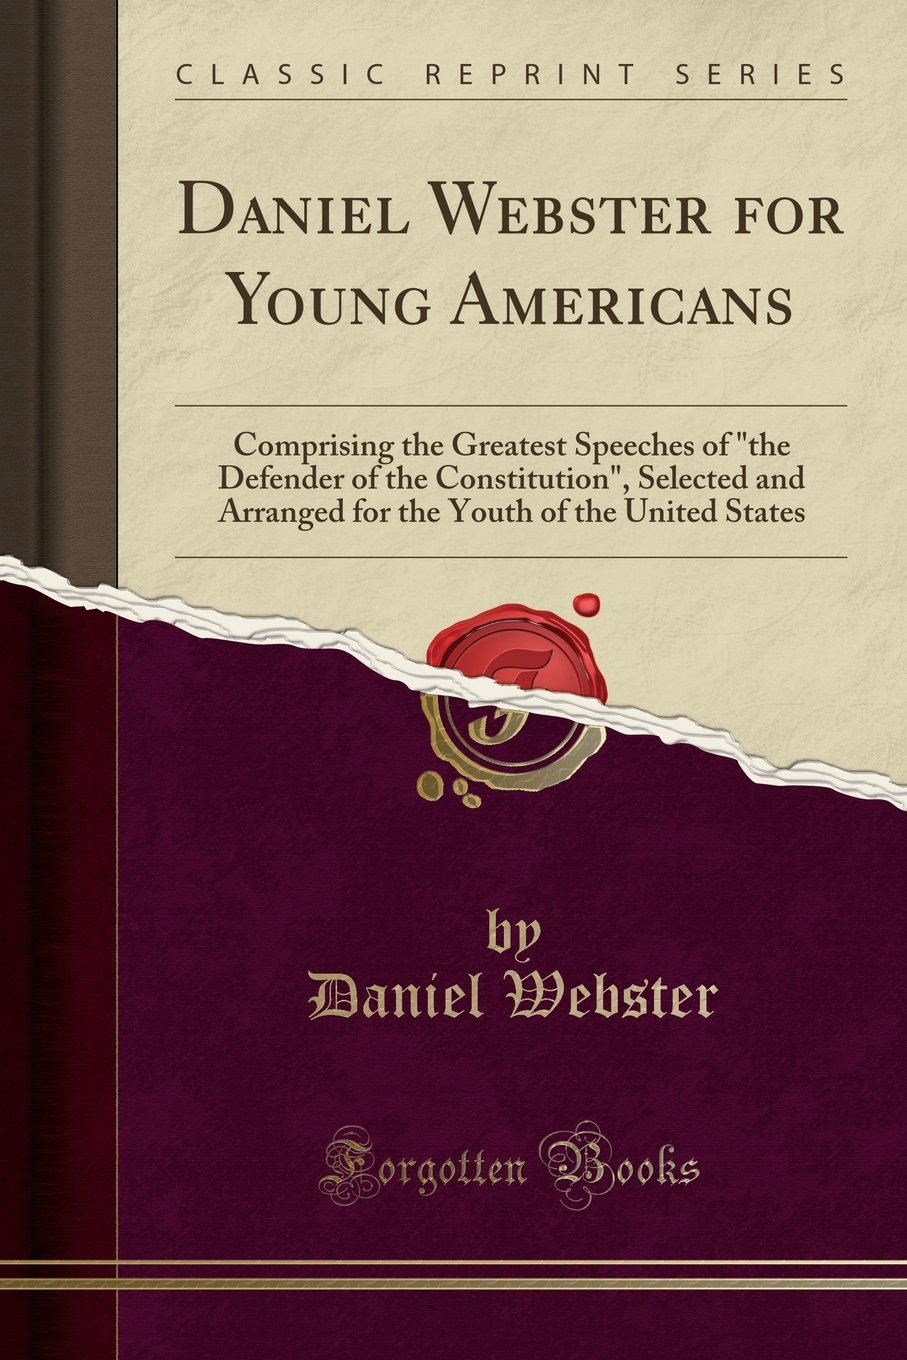 """Daniel Webster for Young Americans: Comprising the Greatest Speeches of """"the Defender of the Constitution,"""" Selected and Arranged for the Youth of the United States (Classic Reprint) pdf"""